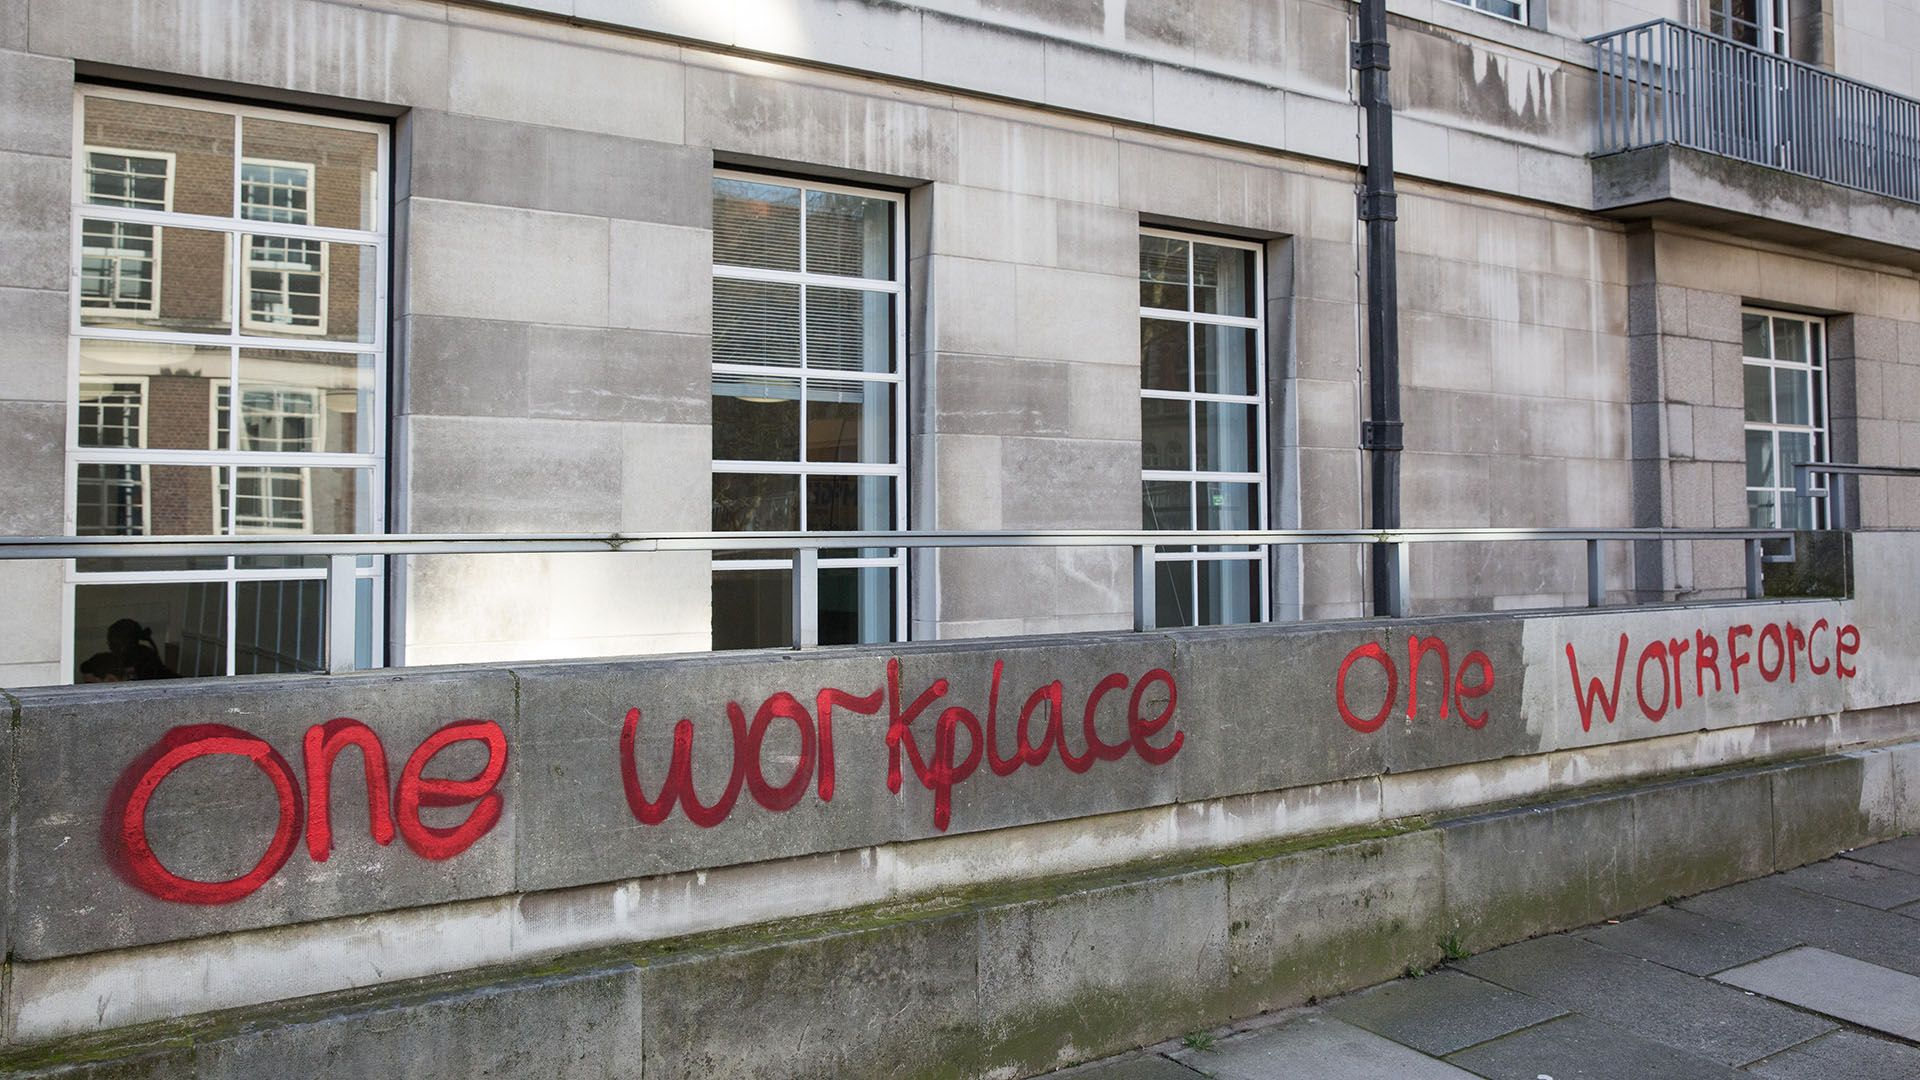 Graffiti outside the University of London on One Day Without Us and the UN World Day of Social Justice early last year (Credit: Alamy)